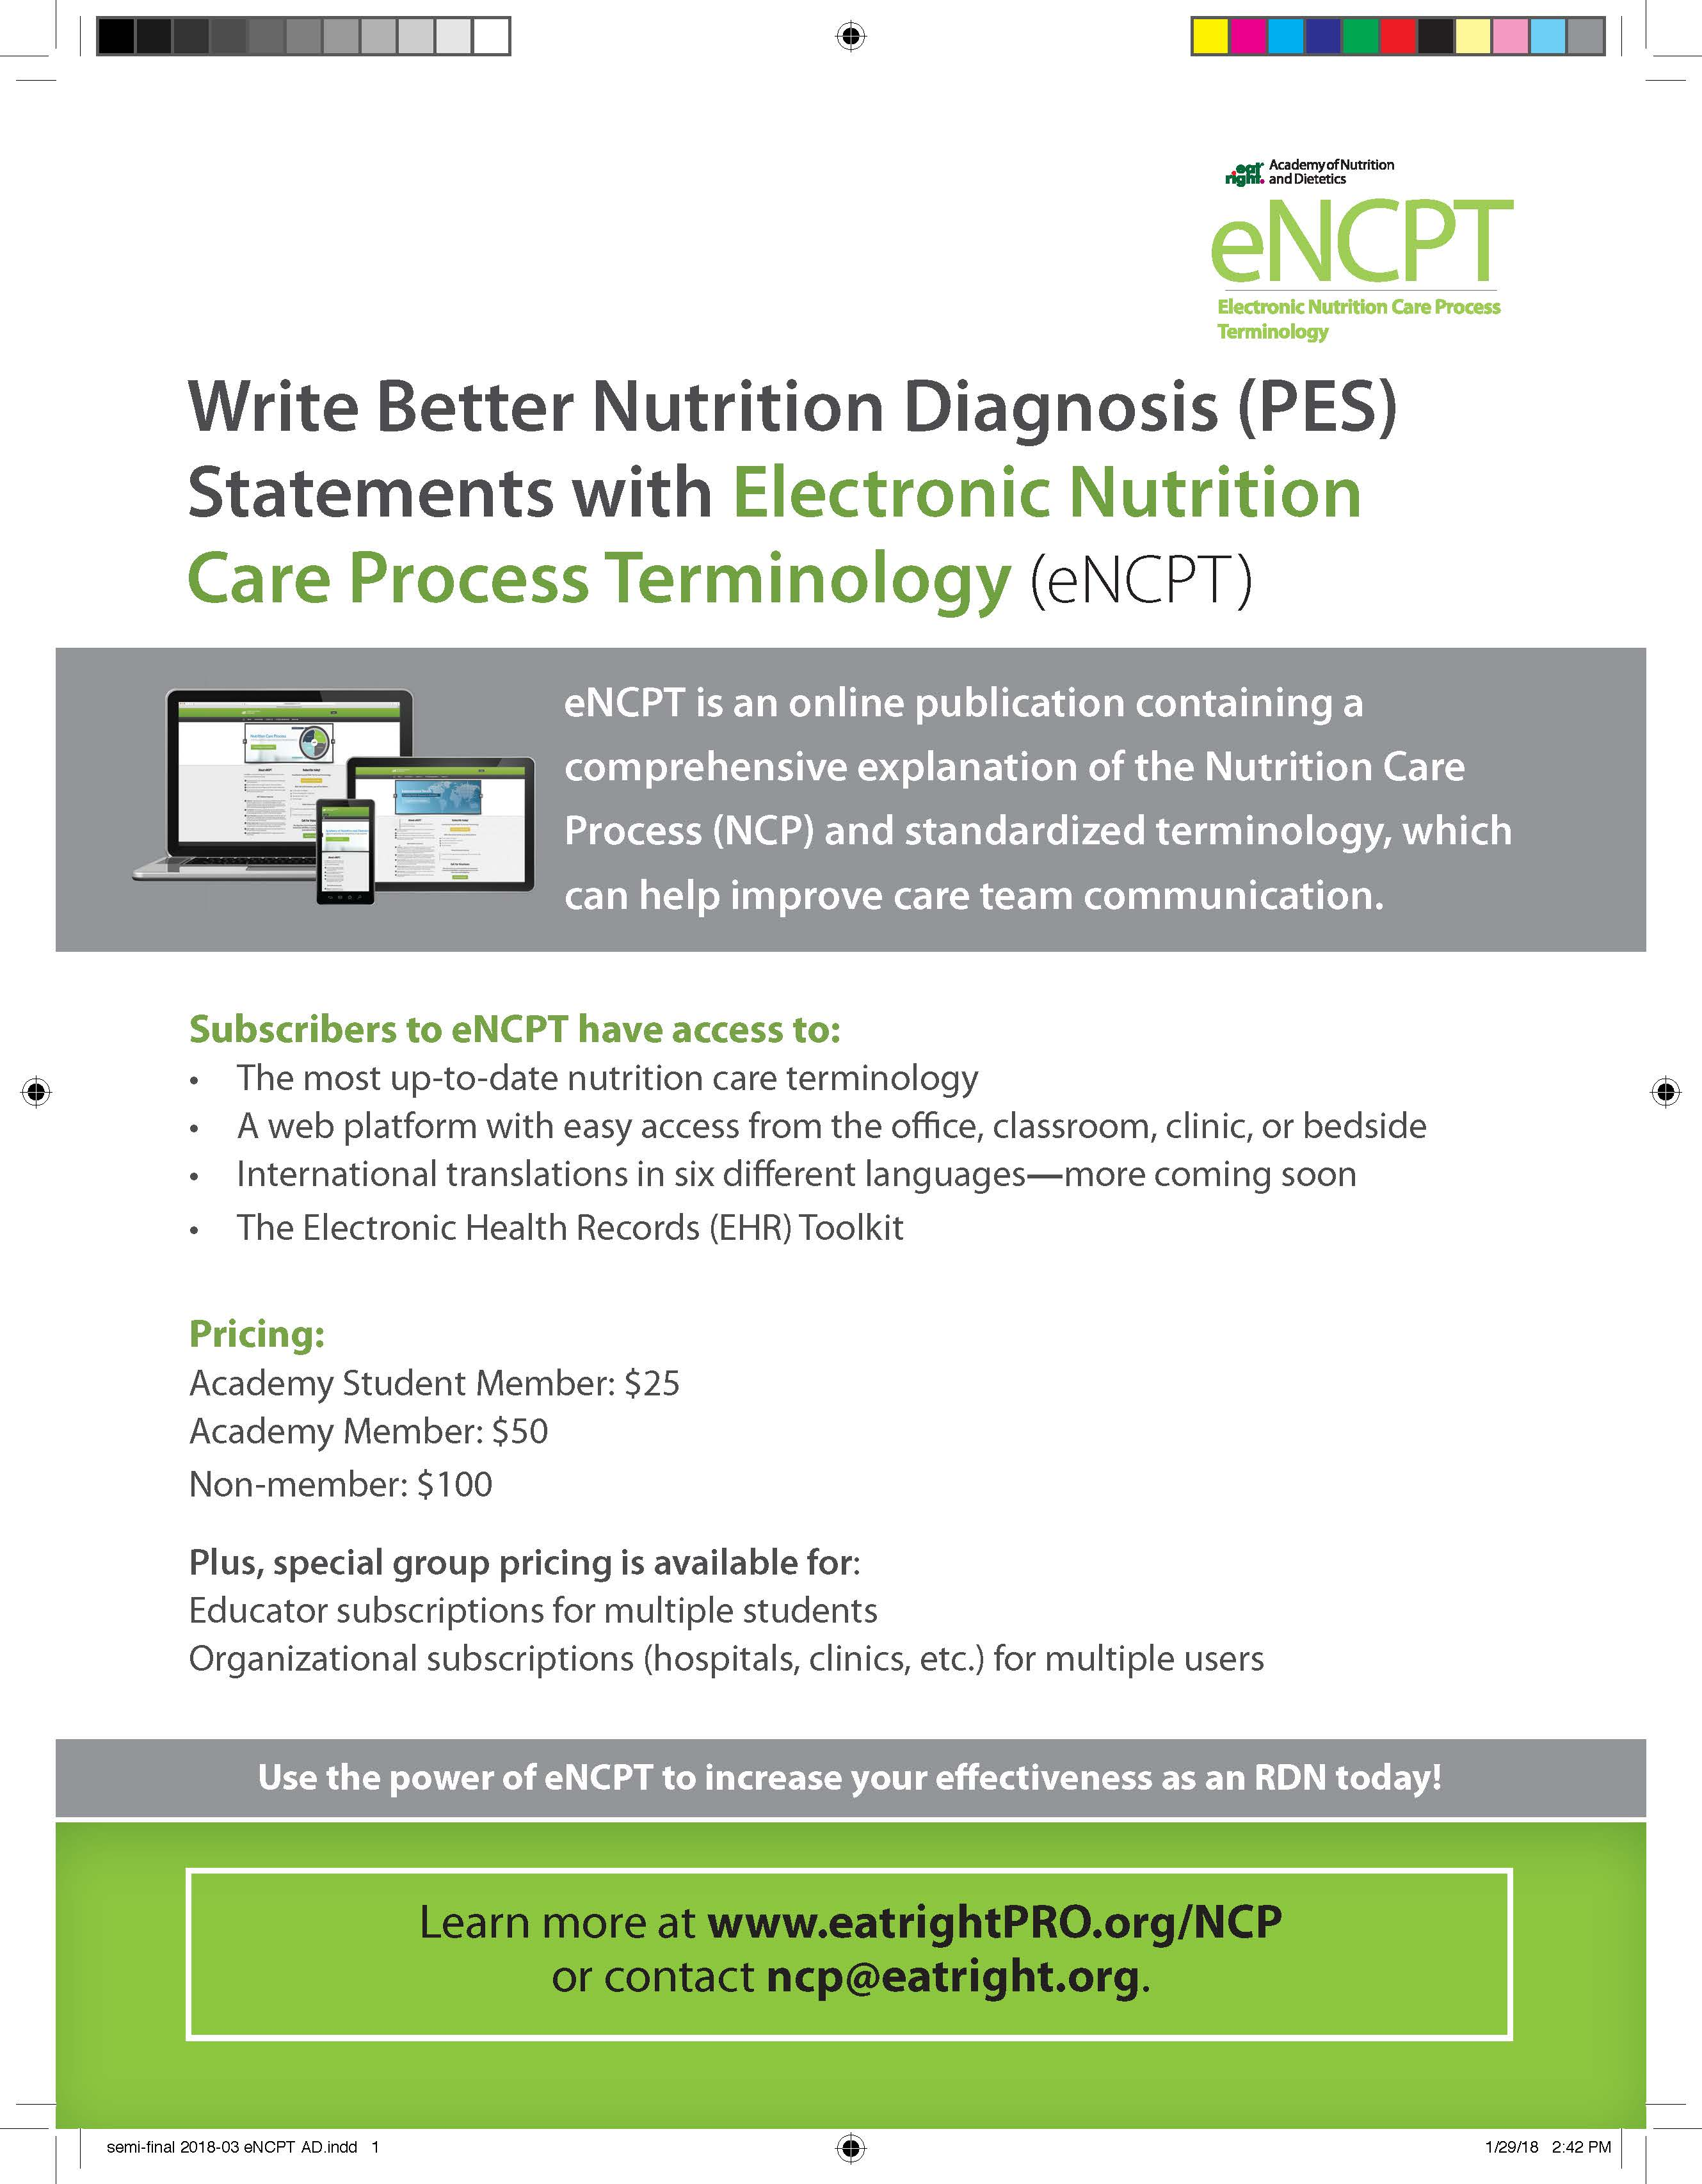 Write Better Nutrition Diagnosis (PES) Statements with Electronic Nutrition  Care Process Terminology (eNCPT) eNCPT is an online publication containing  a ...